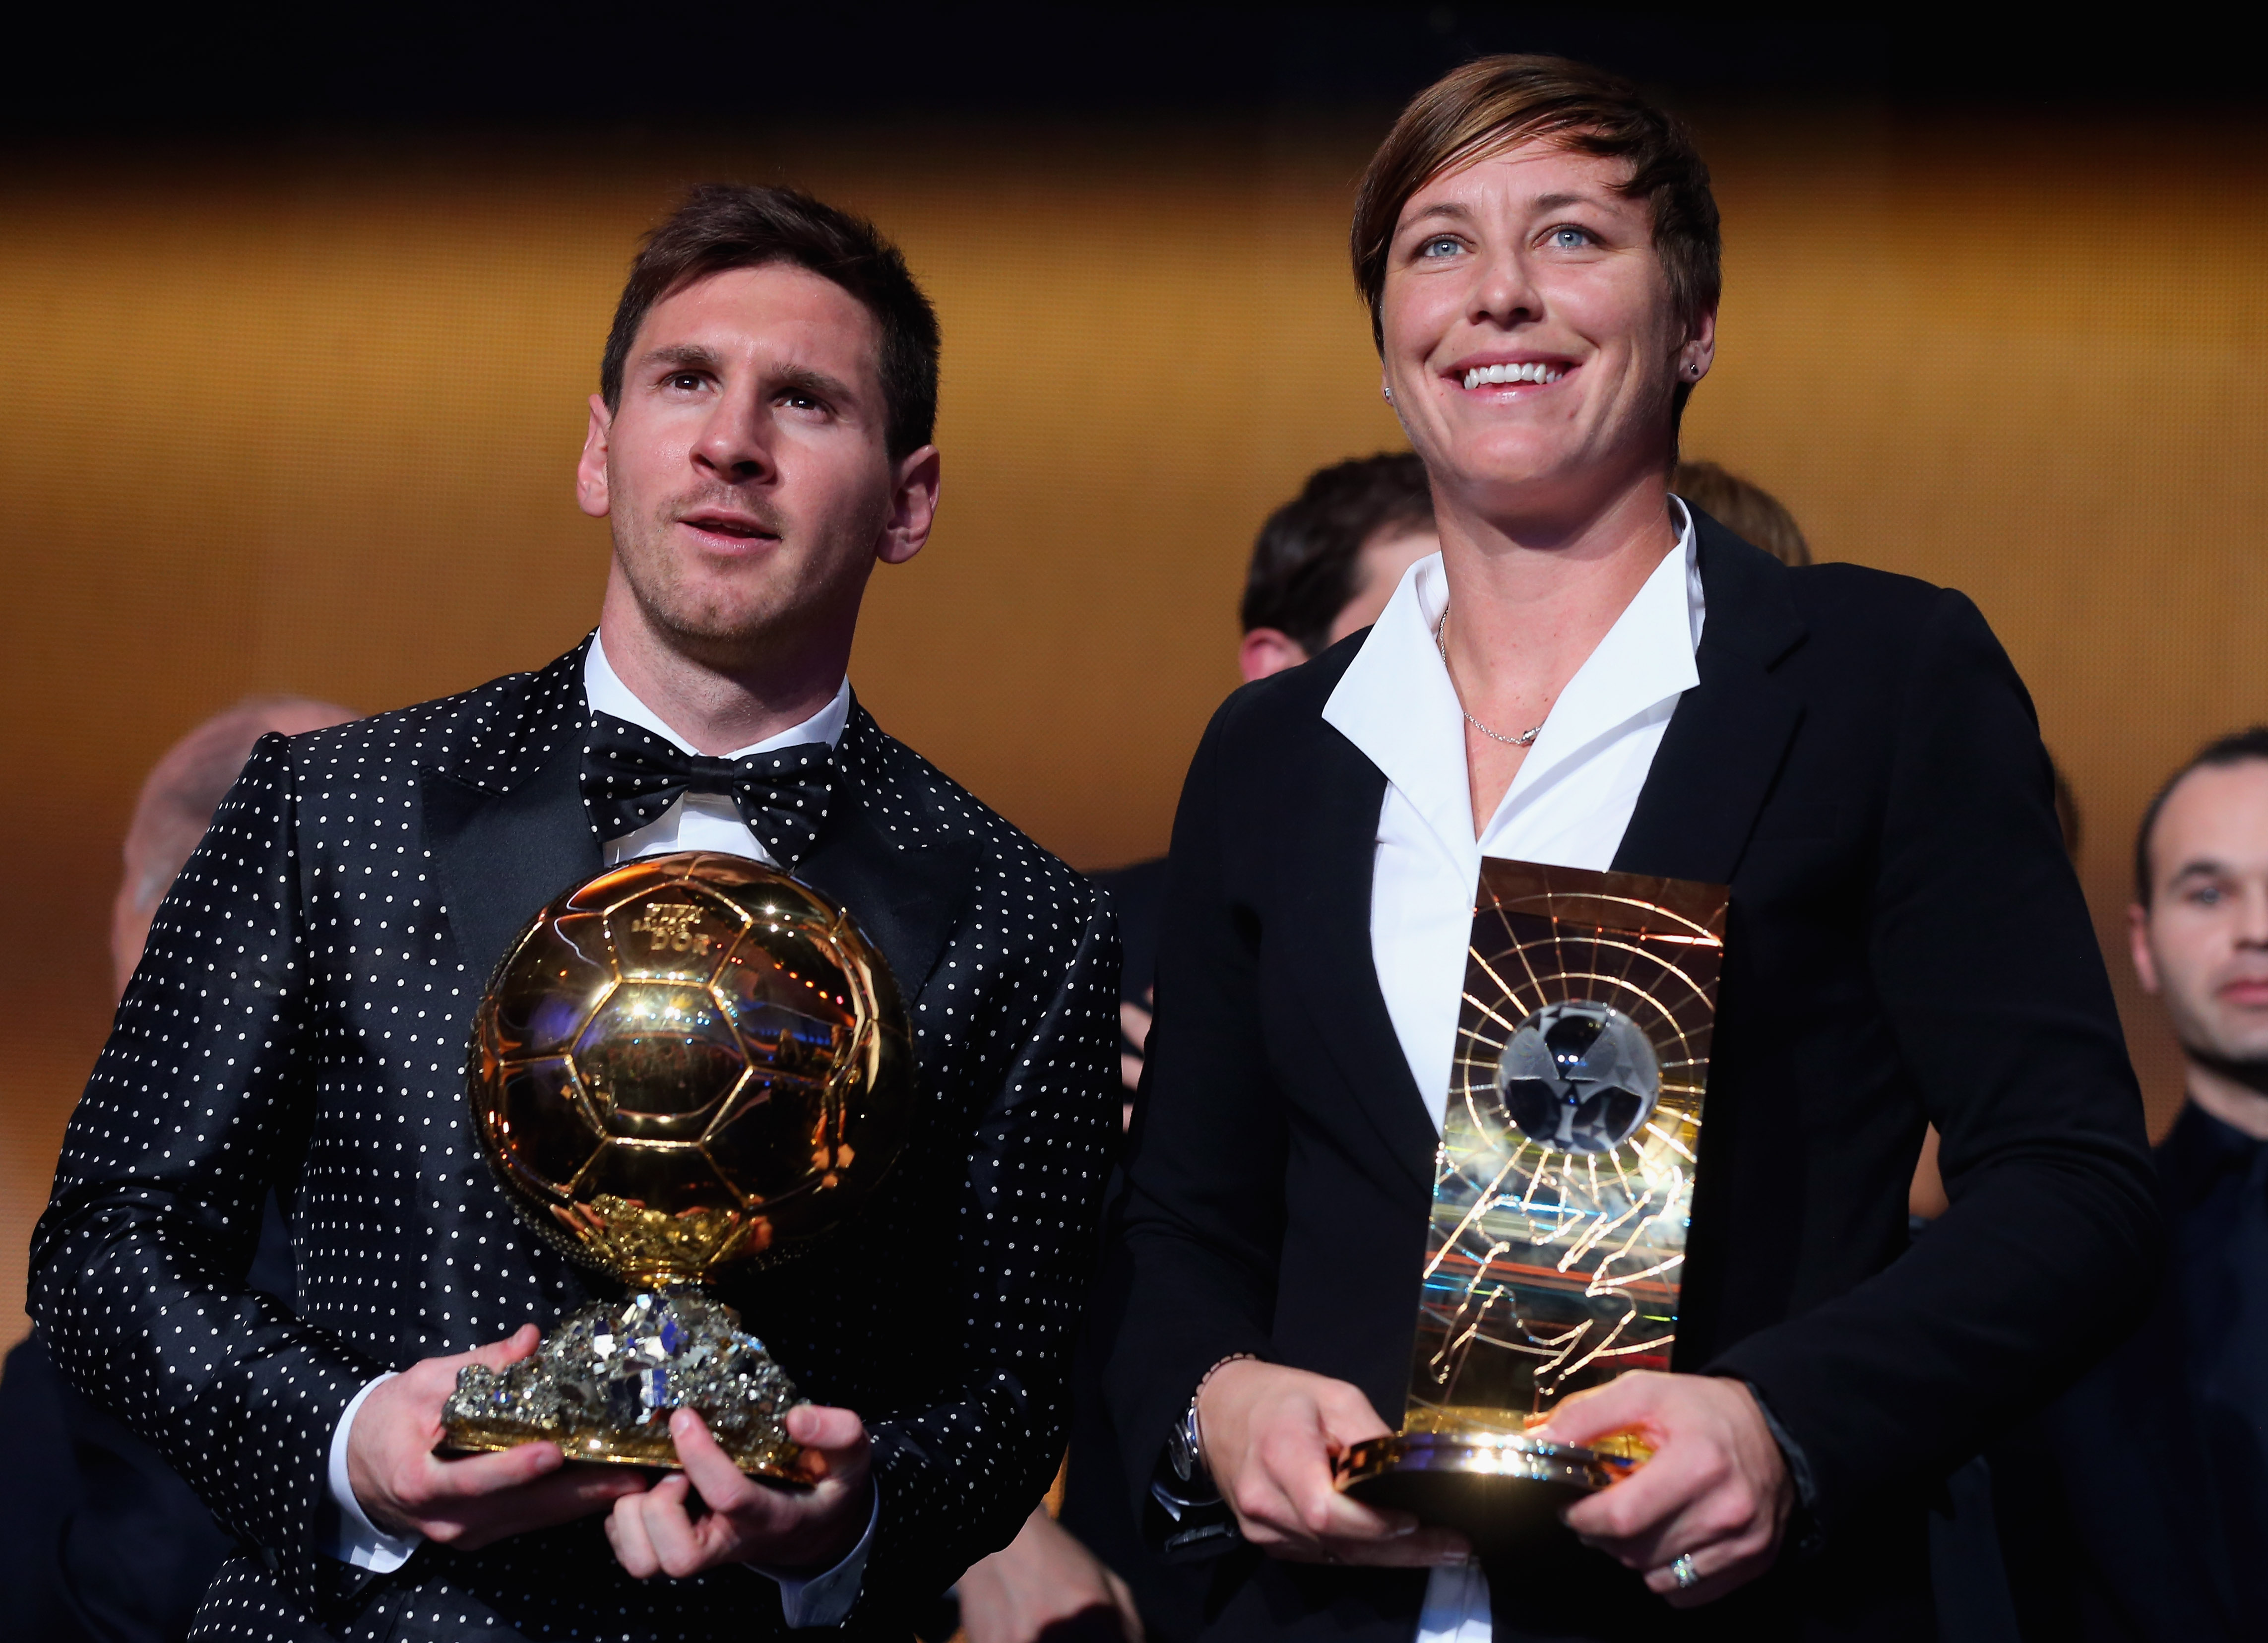 Lot 2 - FIFA Ballon d'Or Awards in Zurich - Two VIP All Inclusive GALA DINNER AWARDS Tickets as Guests of